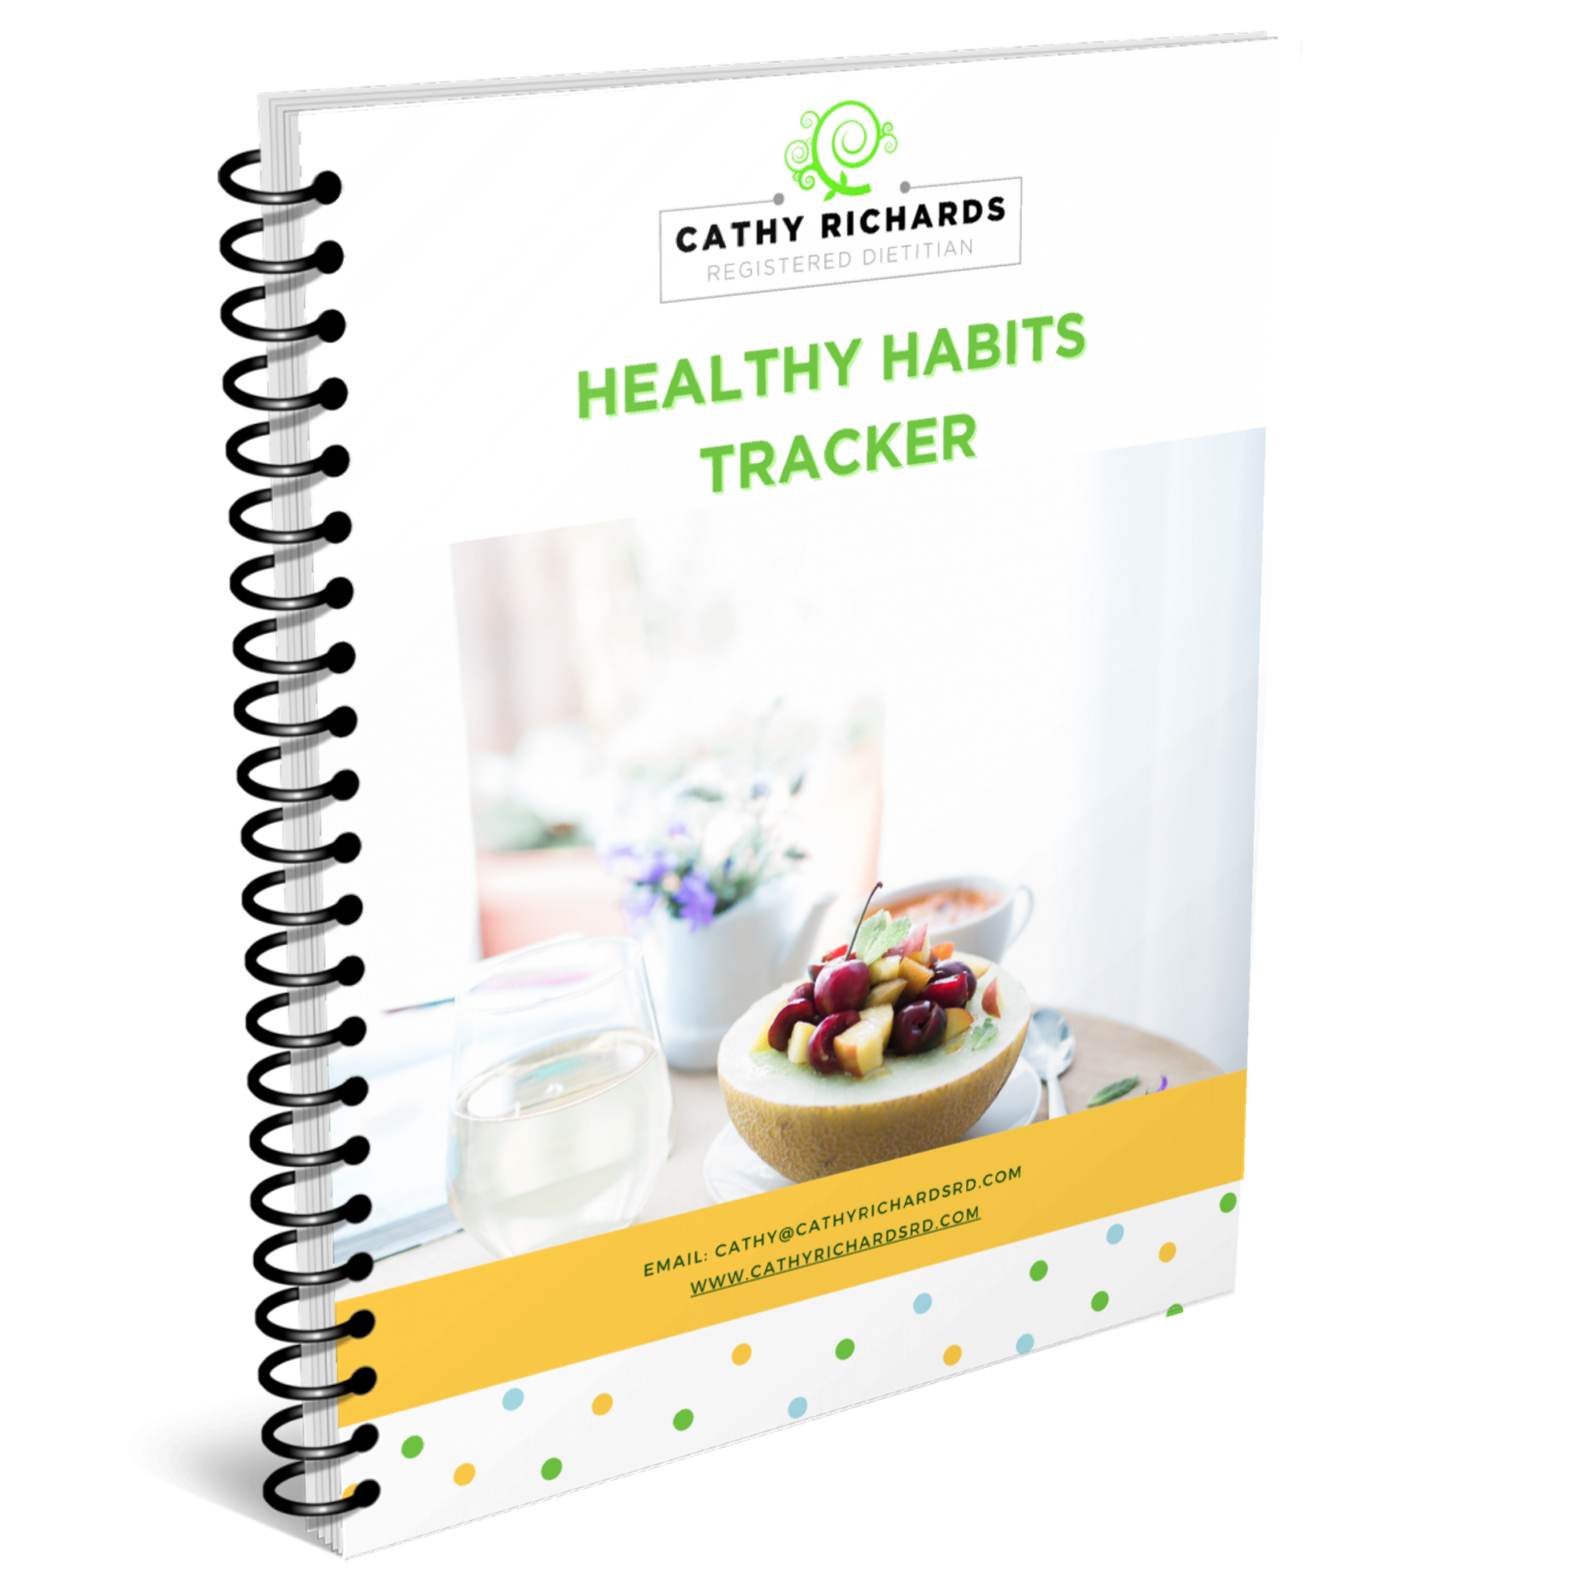 Healthy Habits Tracker Check List Cathyrichardsrd.com